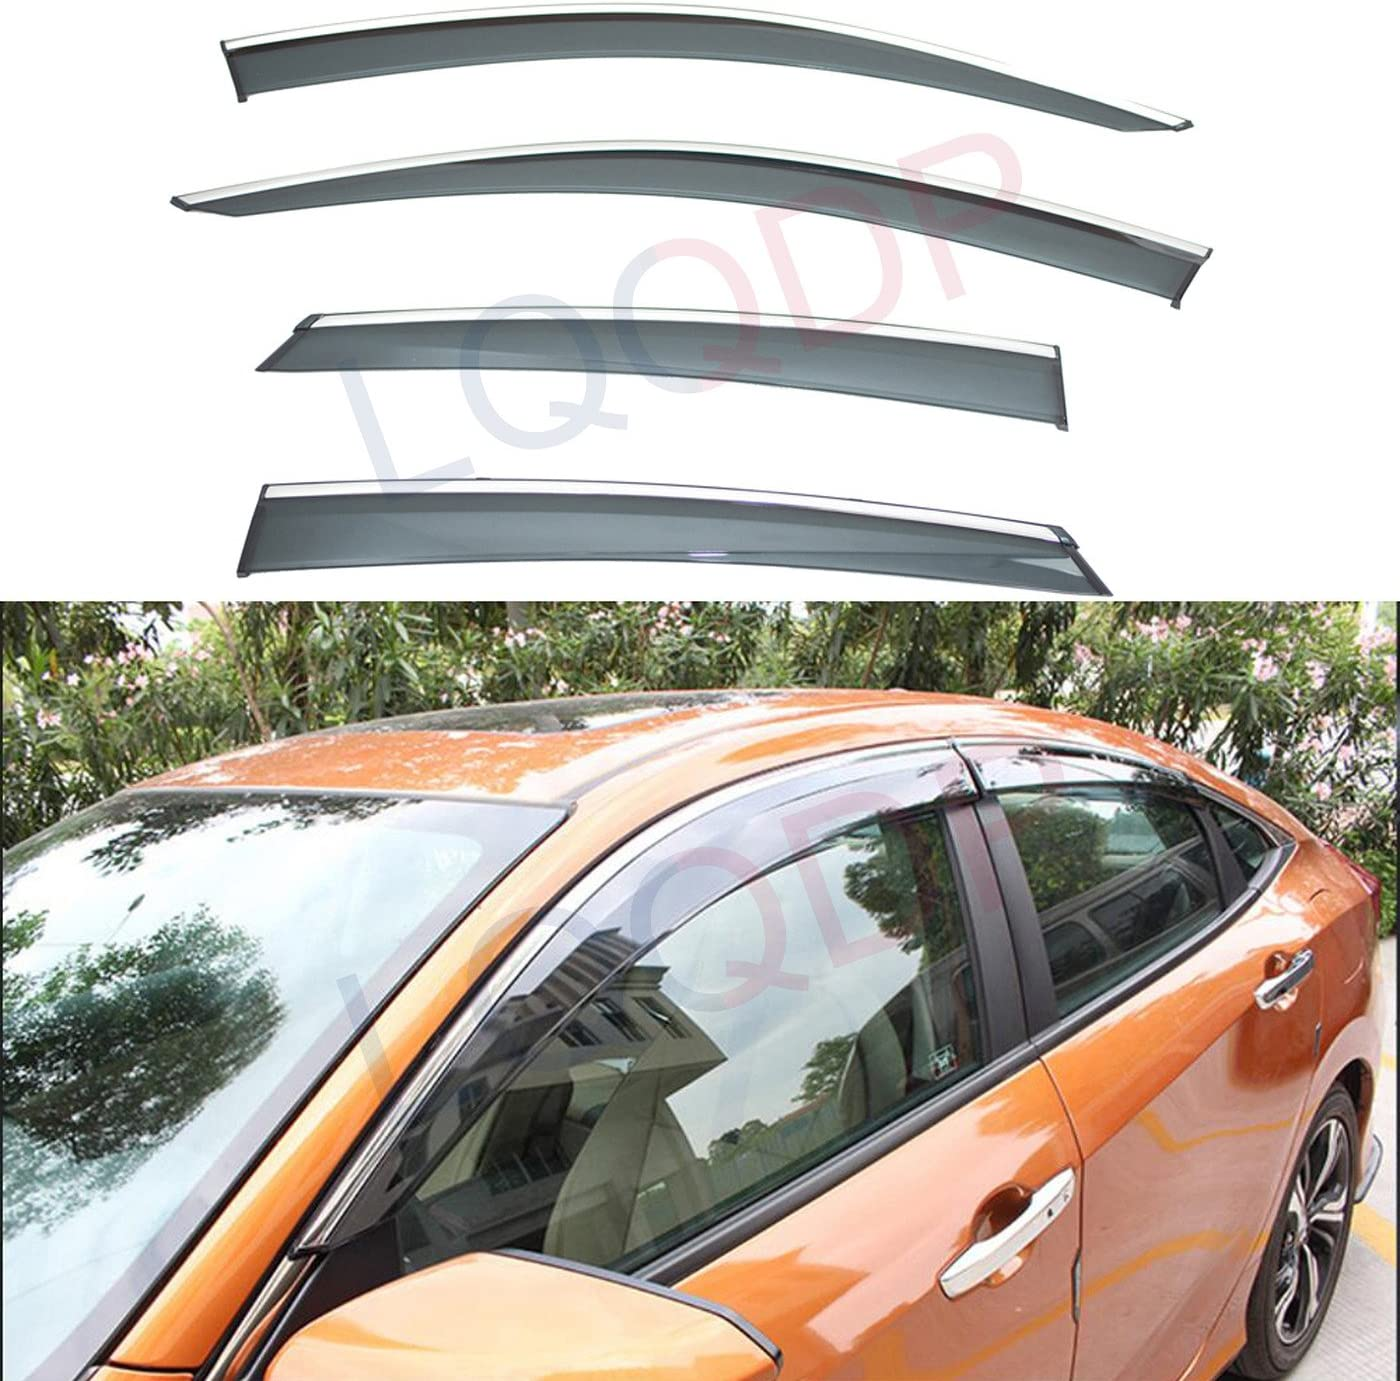 LQQDP 4pcs Smoke Tint With In stock Chrome Trim Outside Courier shipping free Tape On Cli Mount